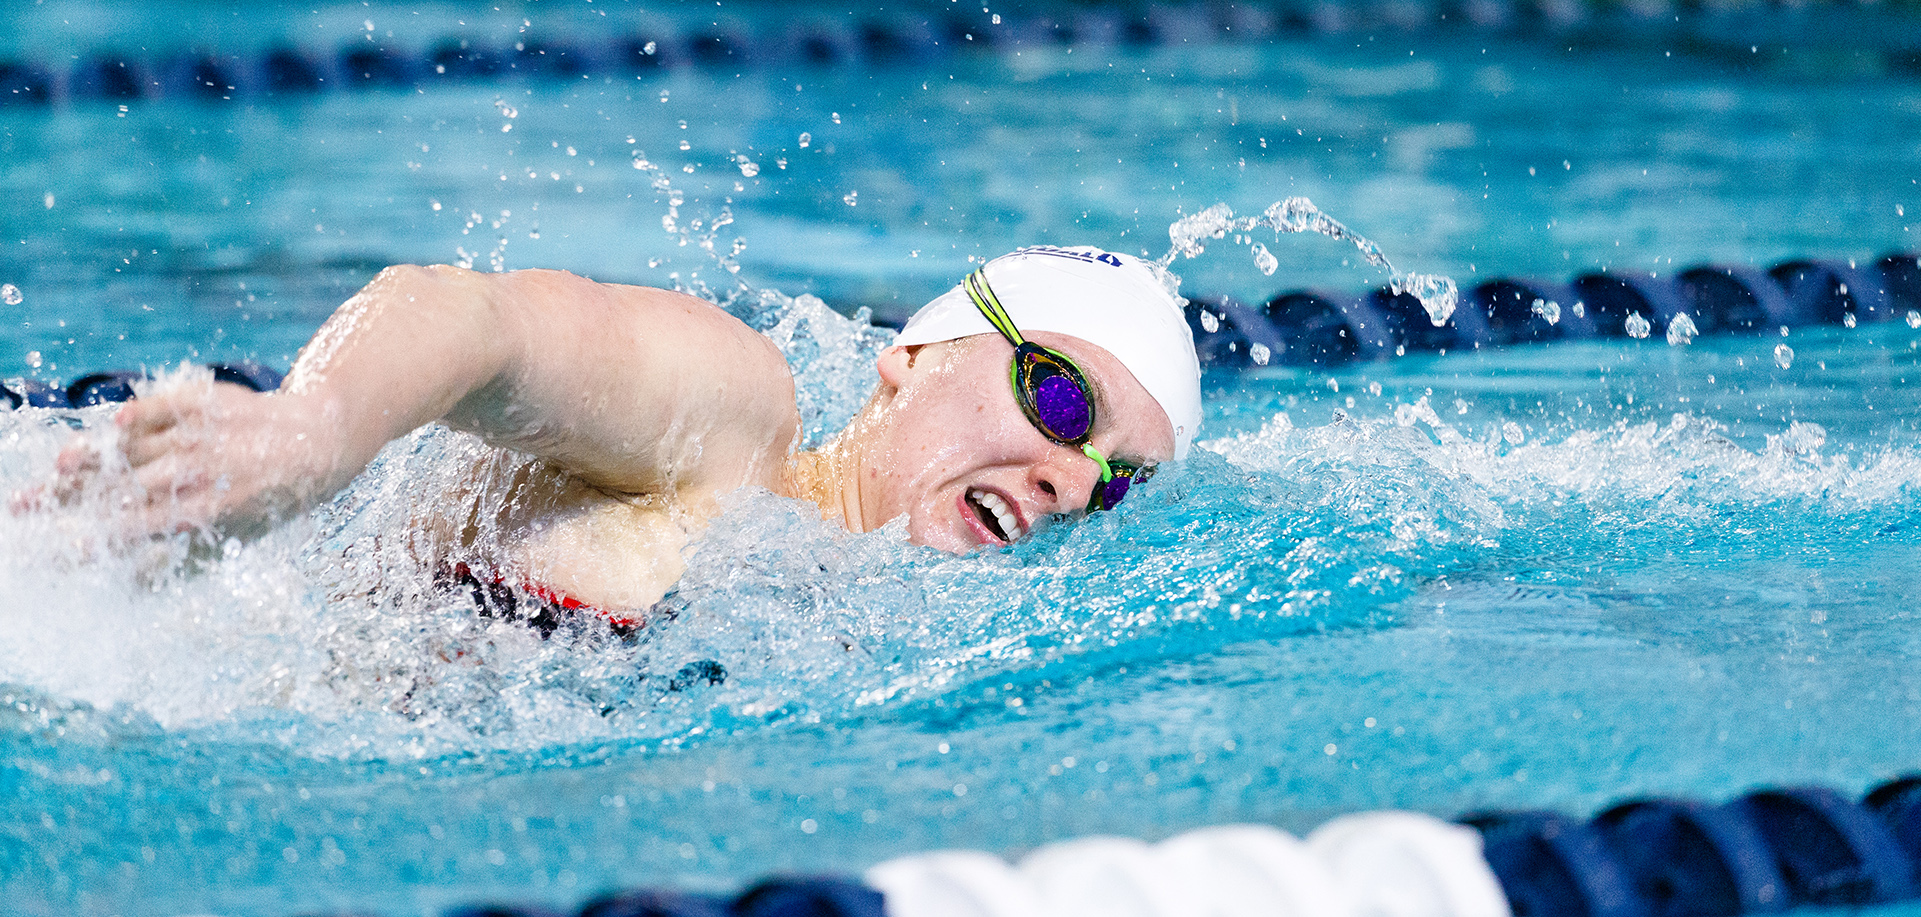 Emma Hazel entered sixth place on Liberty's all-time top 10 lists in both the 100 backstroke and 200 butterfly.